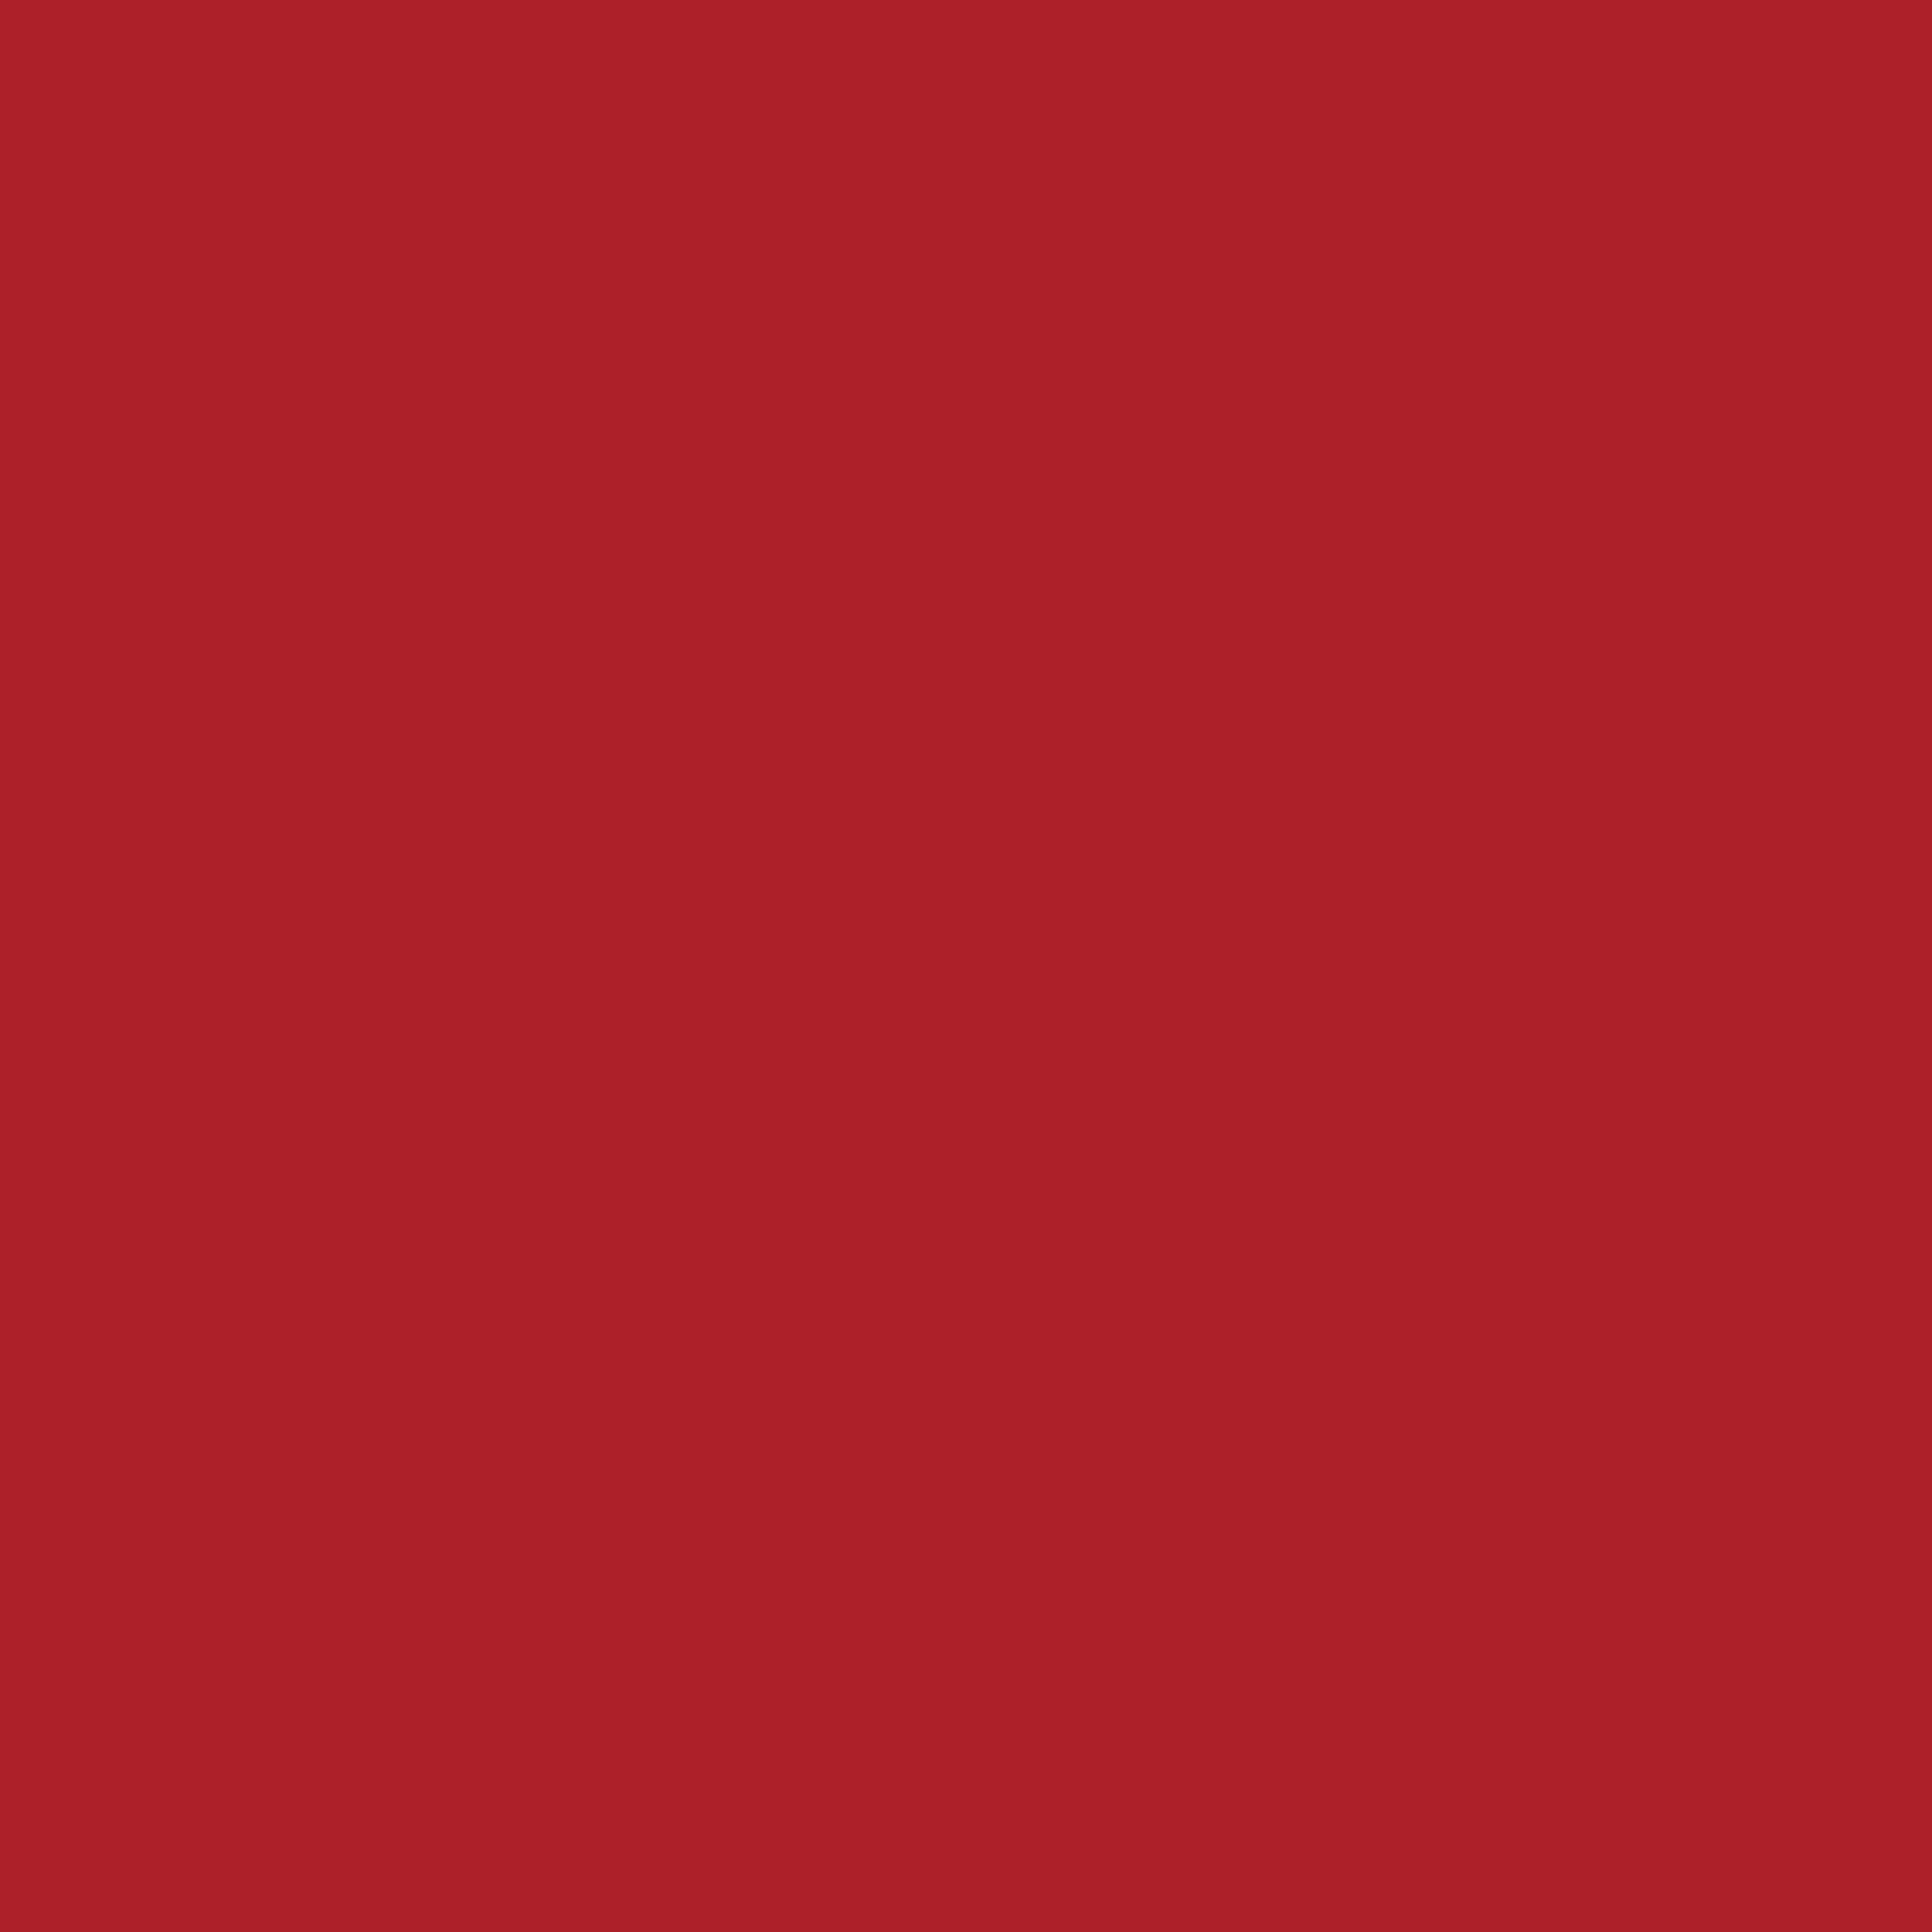 2732x2732 Upsdell Red Solid Color Background